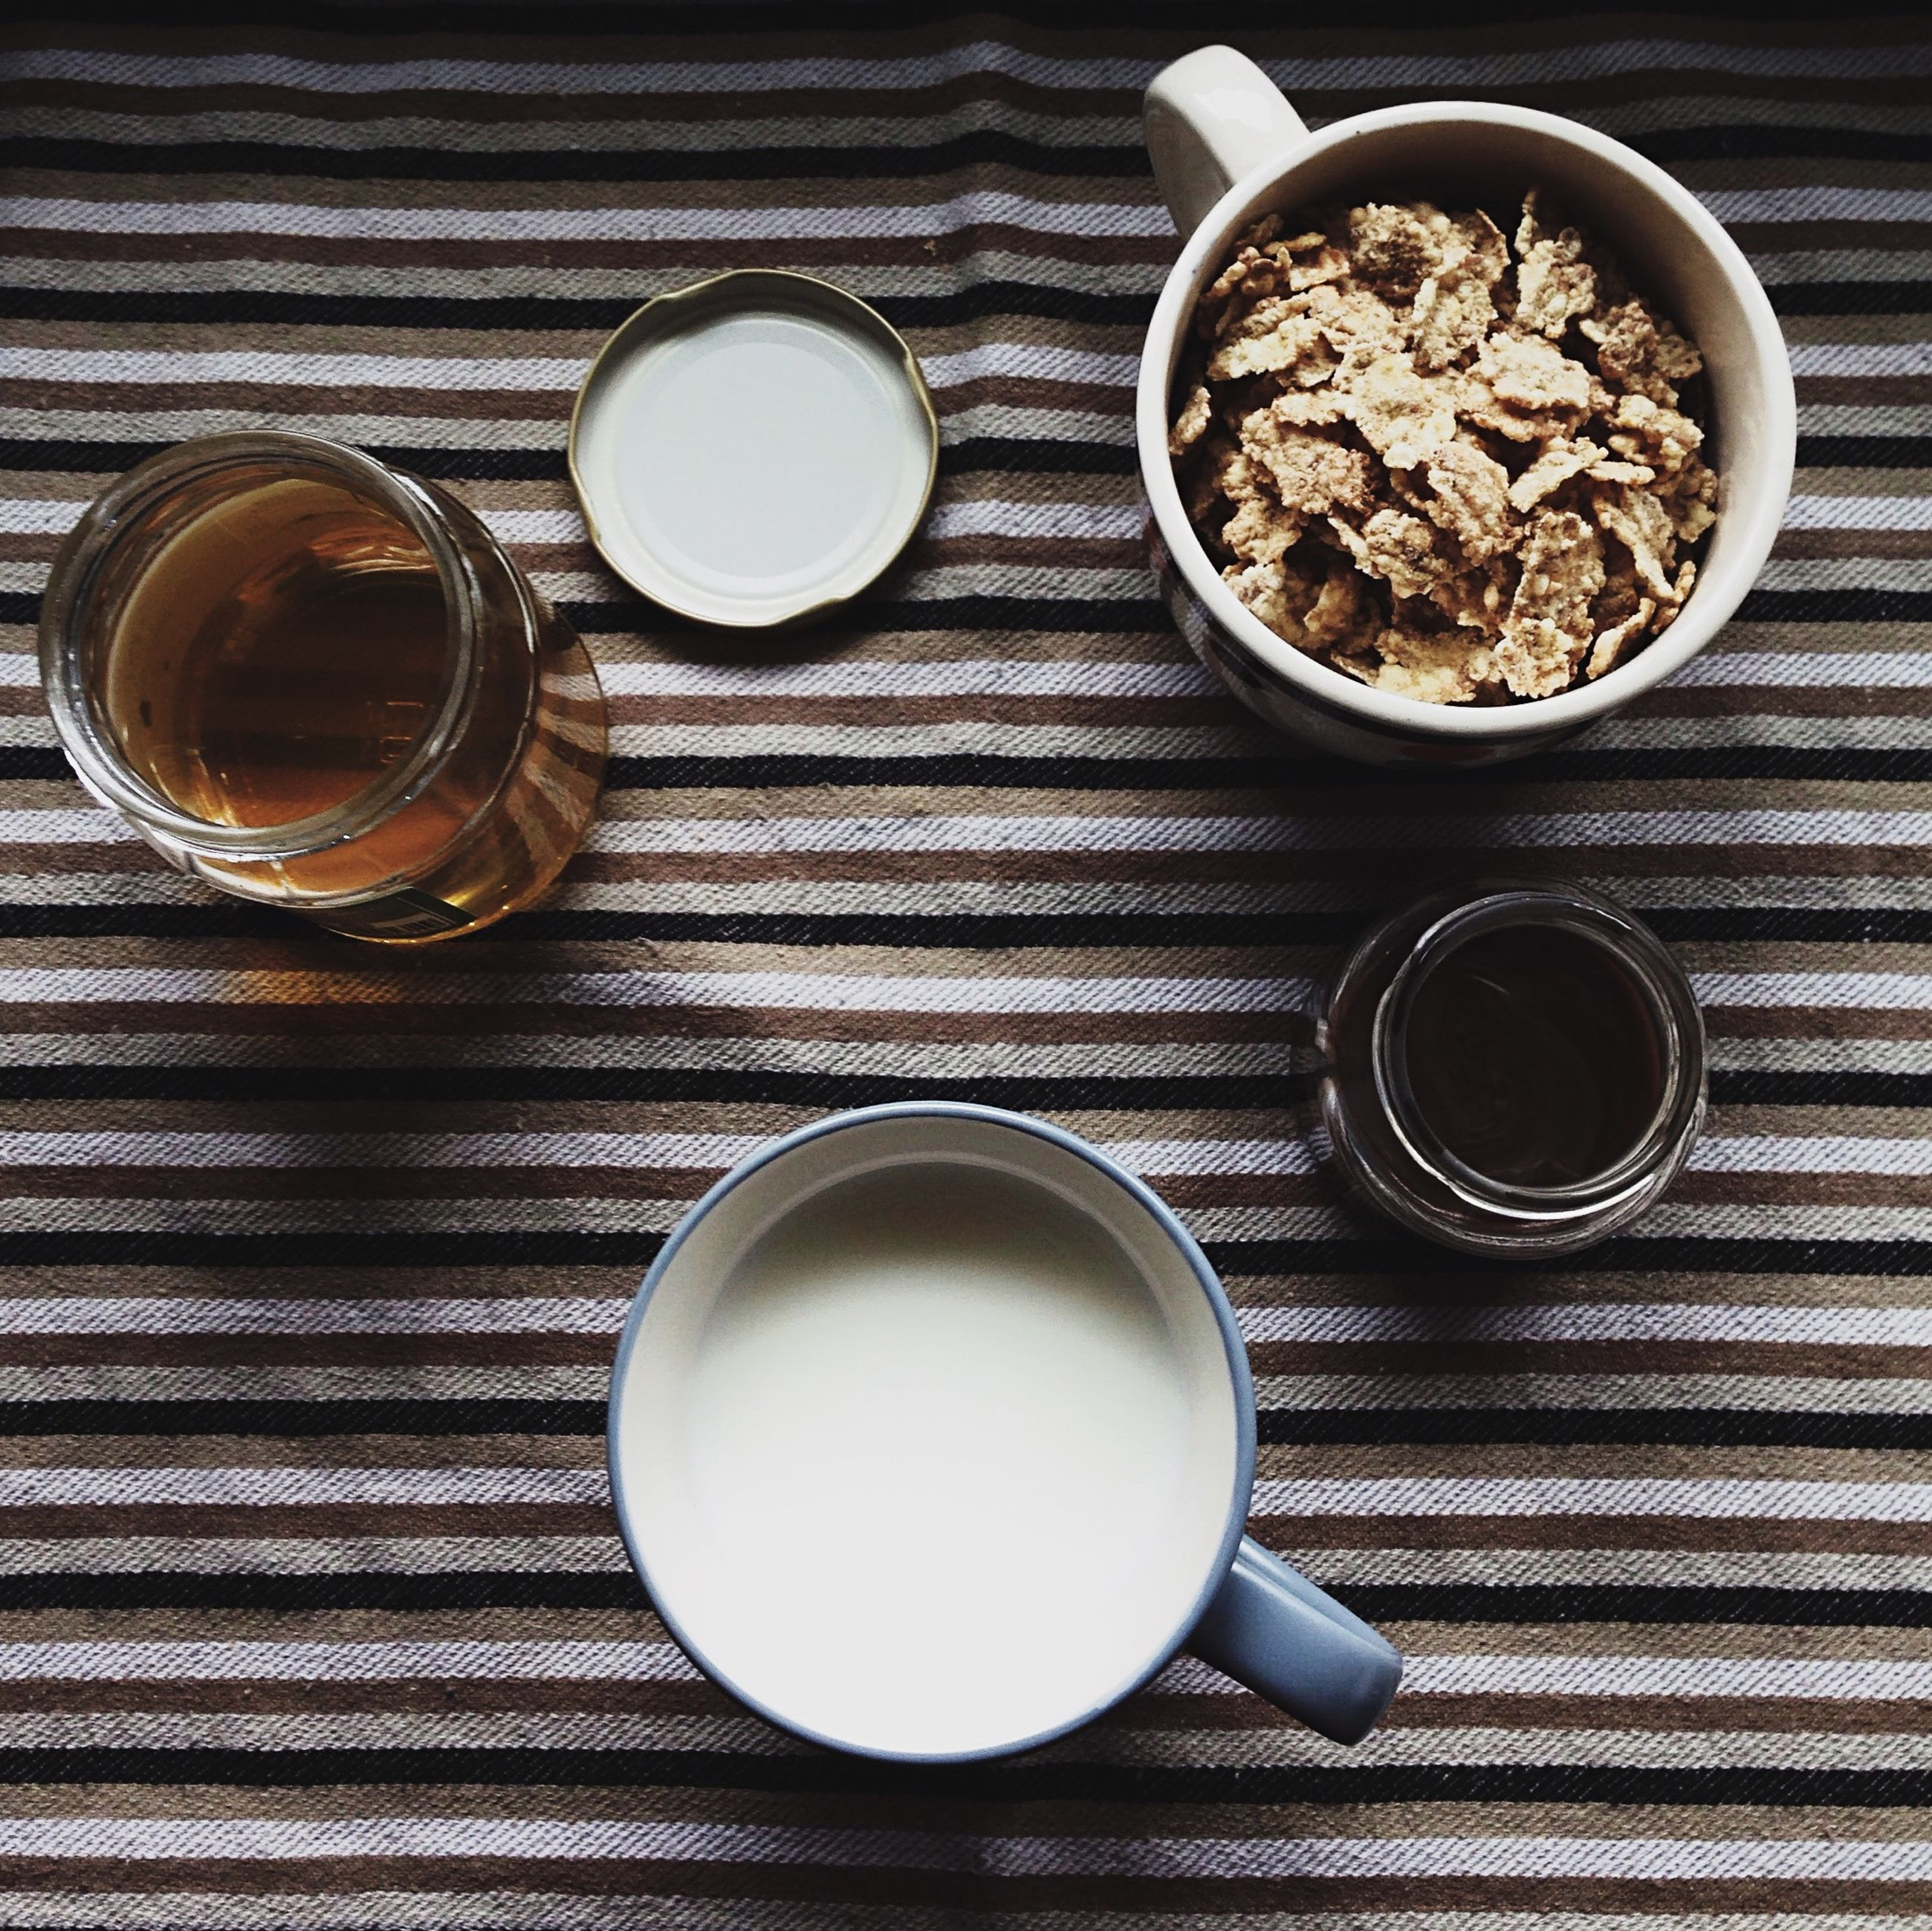 indoors, still life, high angle view, table, directly above, close-up, no people, coffee cup, circle, wood - material, bowl, food and drink, arrangement, drink, cup, container, metal, coffee - drink, large group of objects, spoon